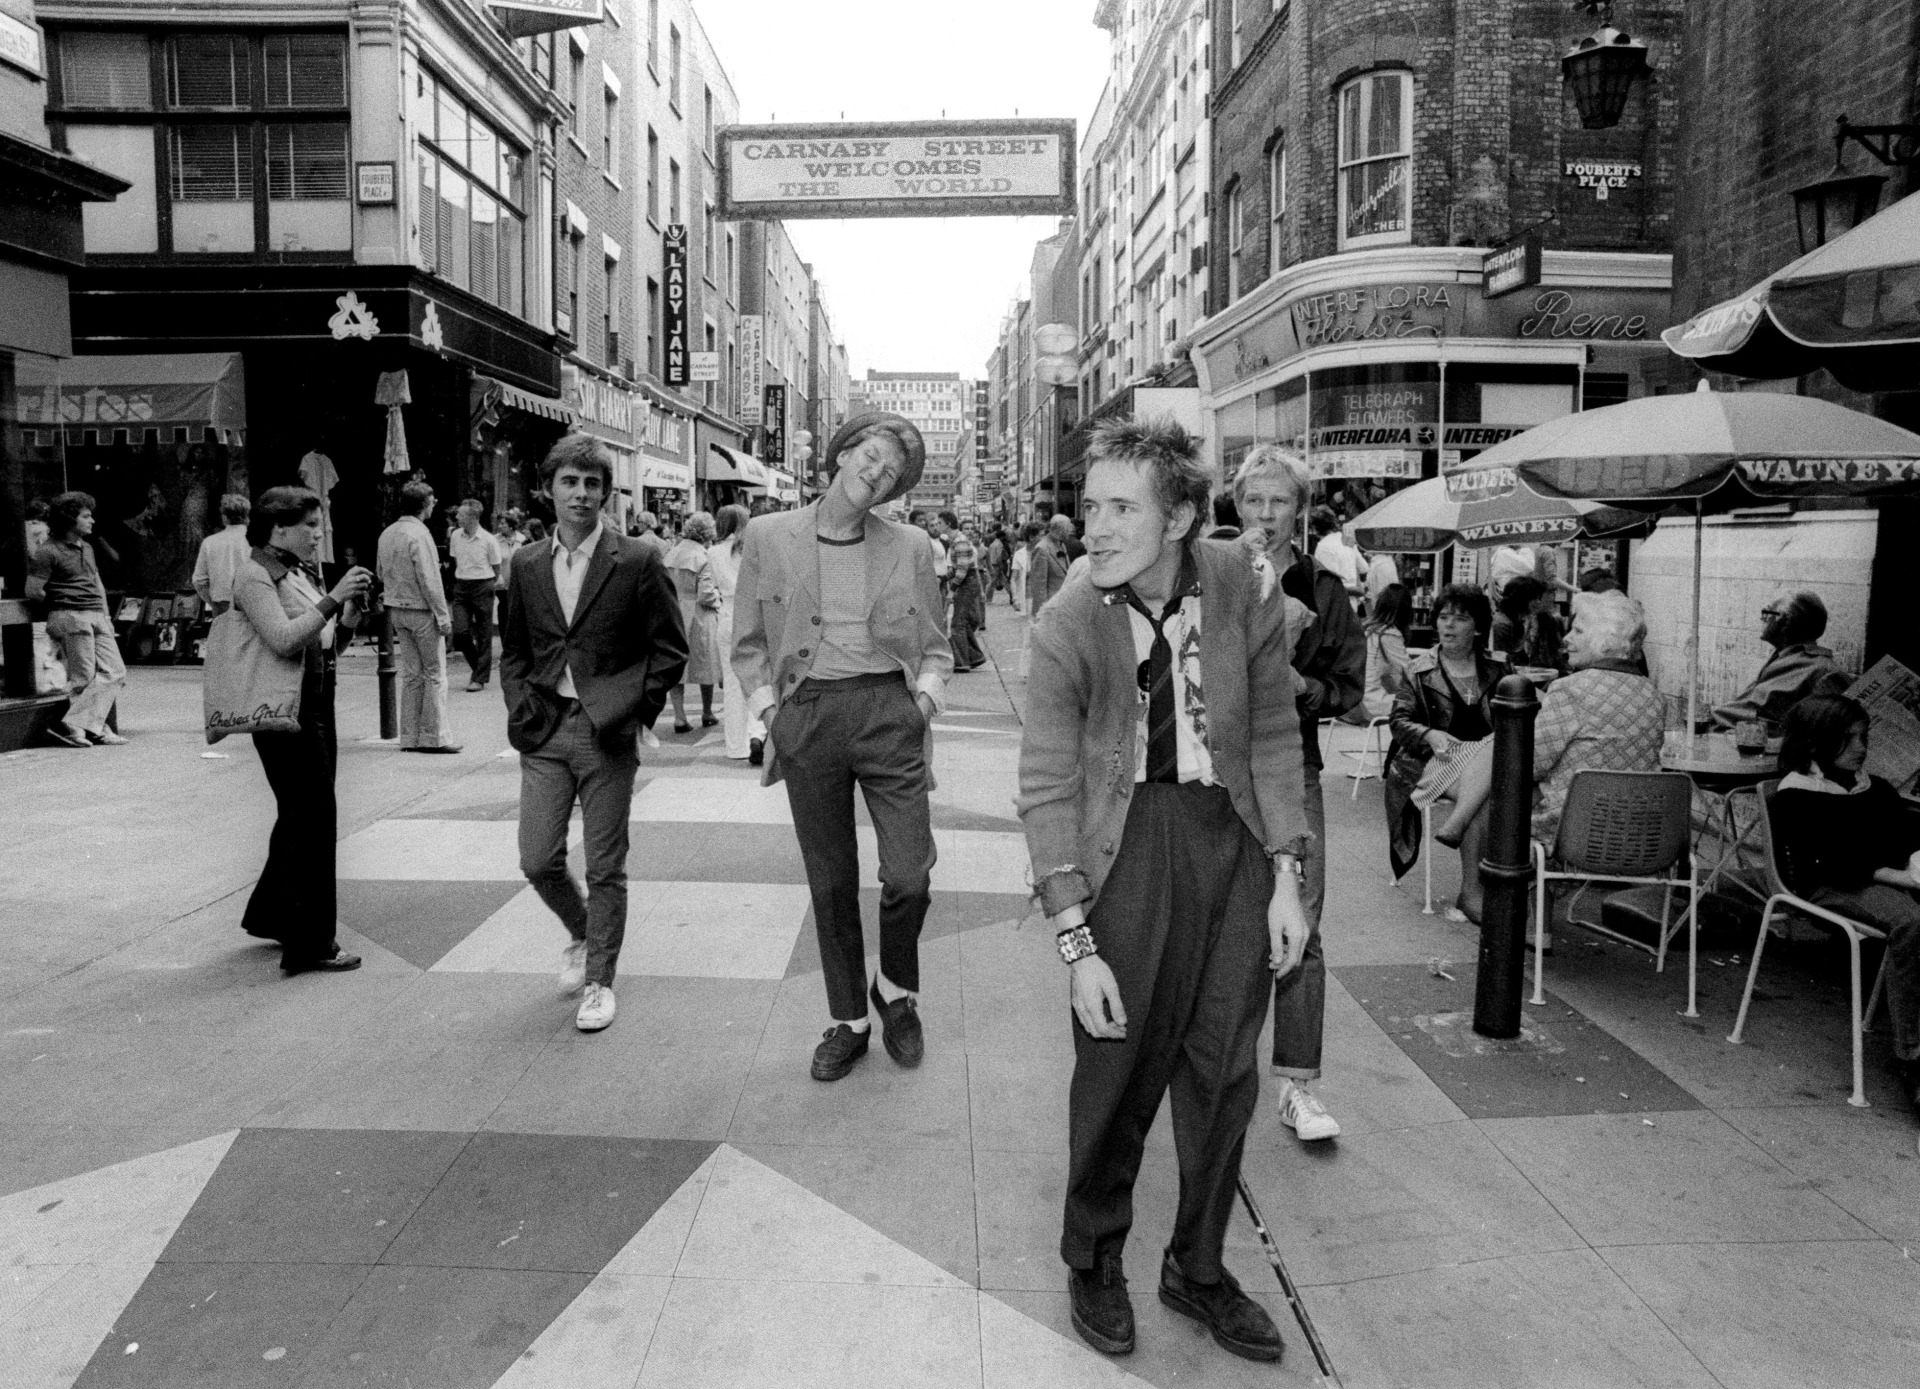 Photo by Ray Stevenson / Rex Features. Sex Pistols - Glen Matlock, Steve Jones, Johnny Rotten and Paul Cook, Carnaby Street. 1976